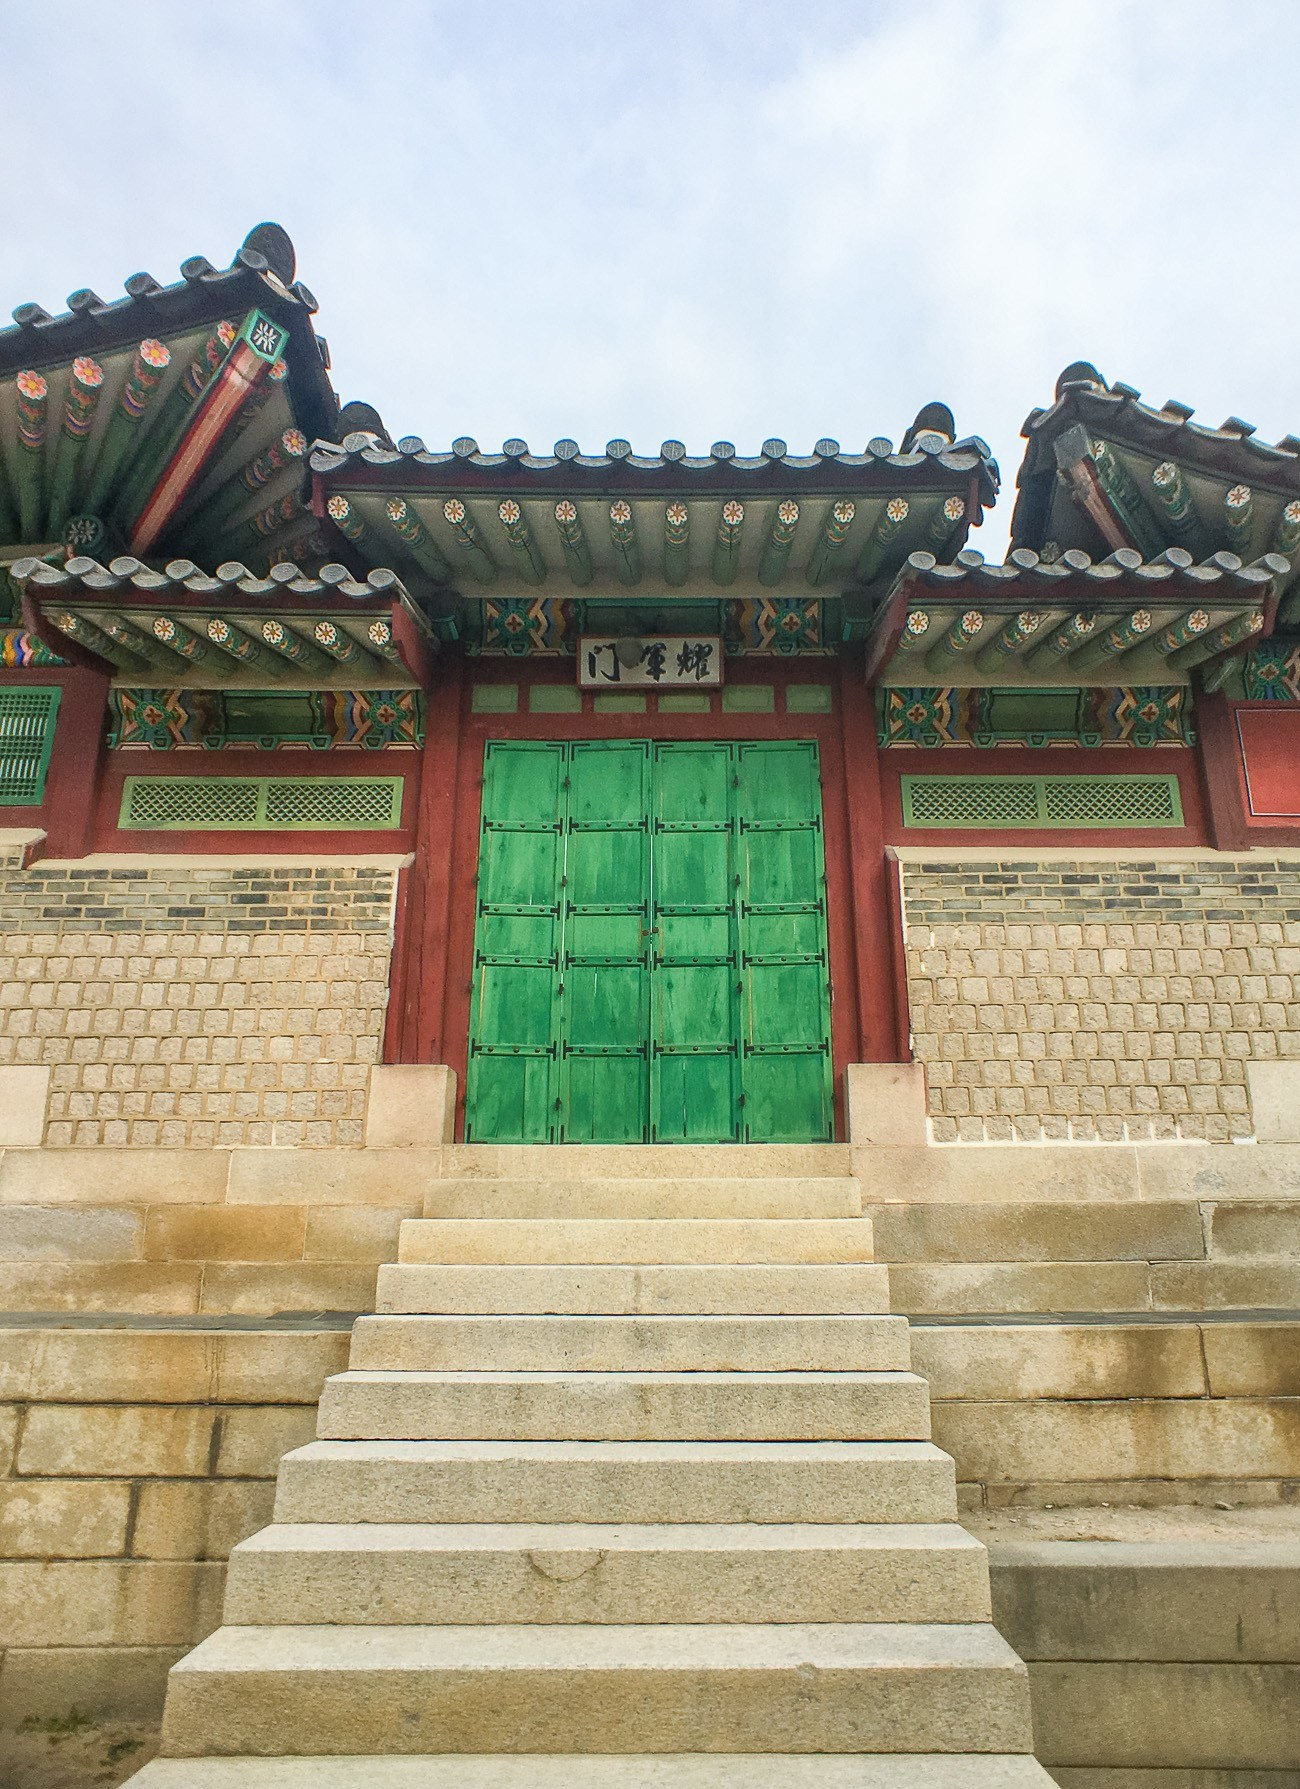 A review of my Moment wide angle iPhone lens after shooting Changdeokgung Palace in Seoul.